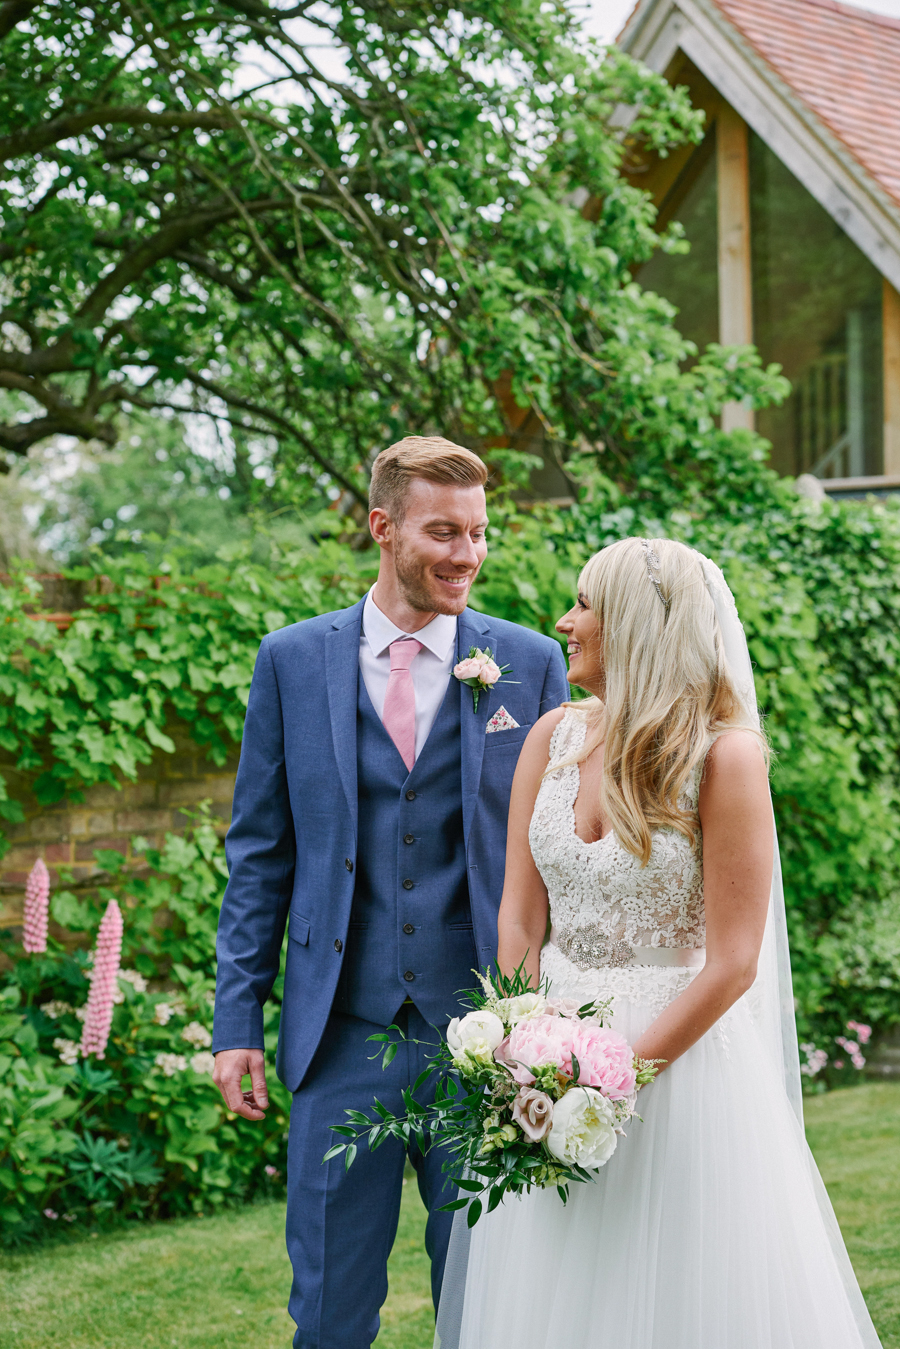 Penny and Ben's funfair wedding at Marleybrook with Rose Images (21)